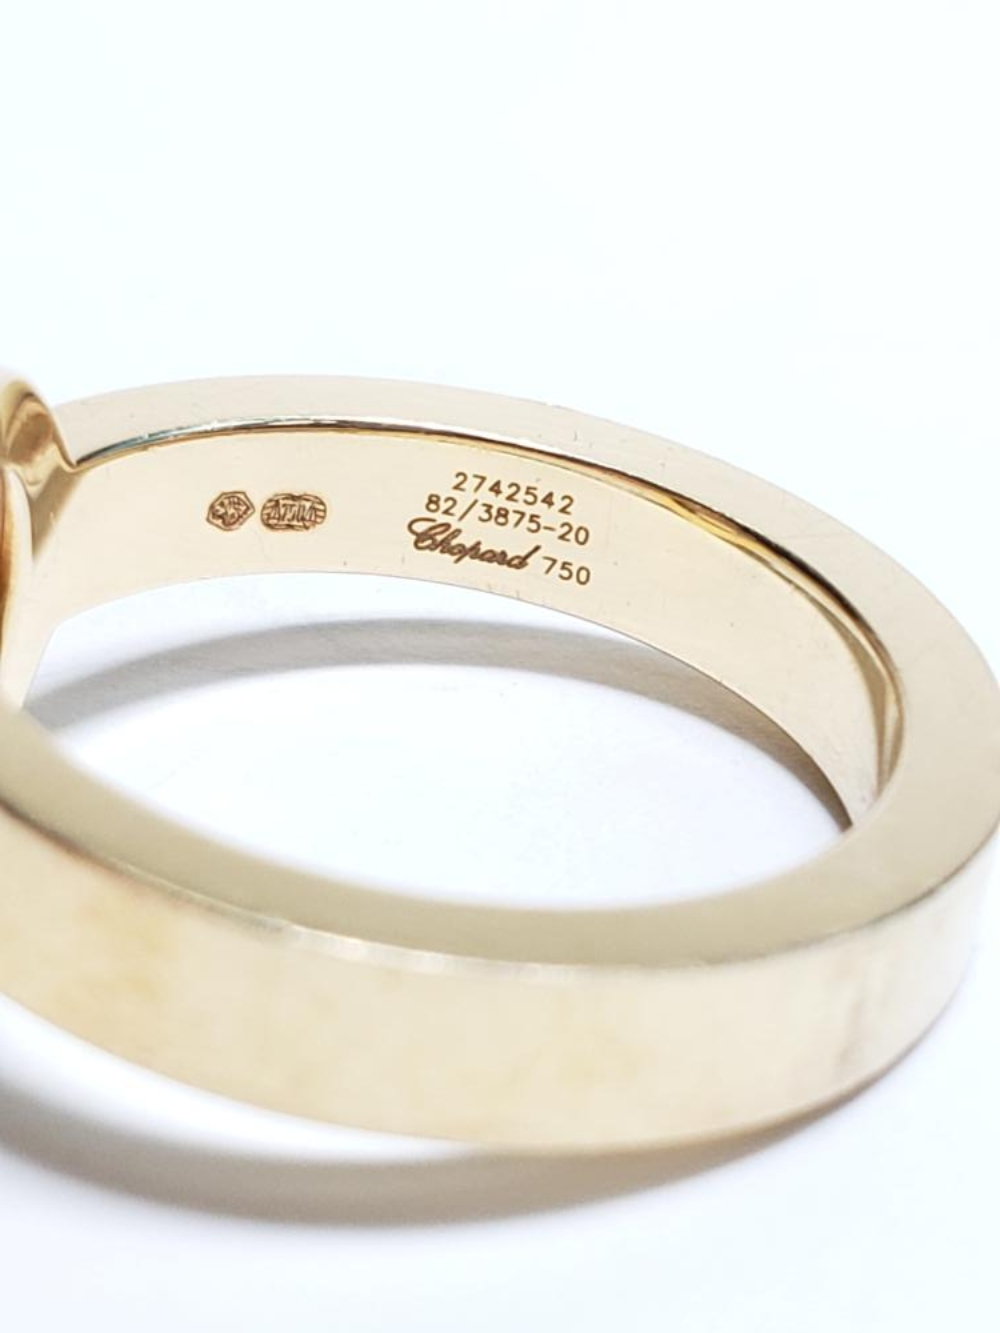 Lot 57: Designer Womens Chopard Happy Diamond 18k Yellow Gold Ring with Box